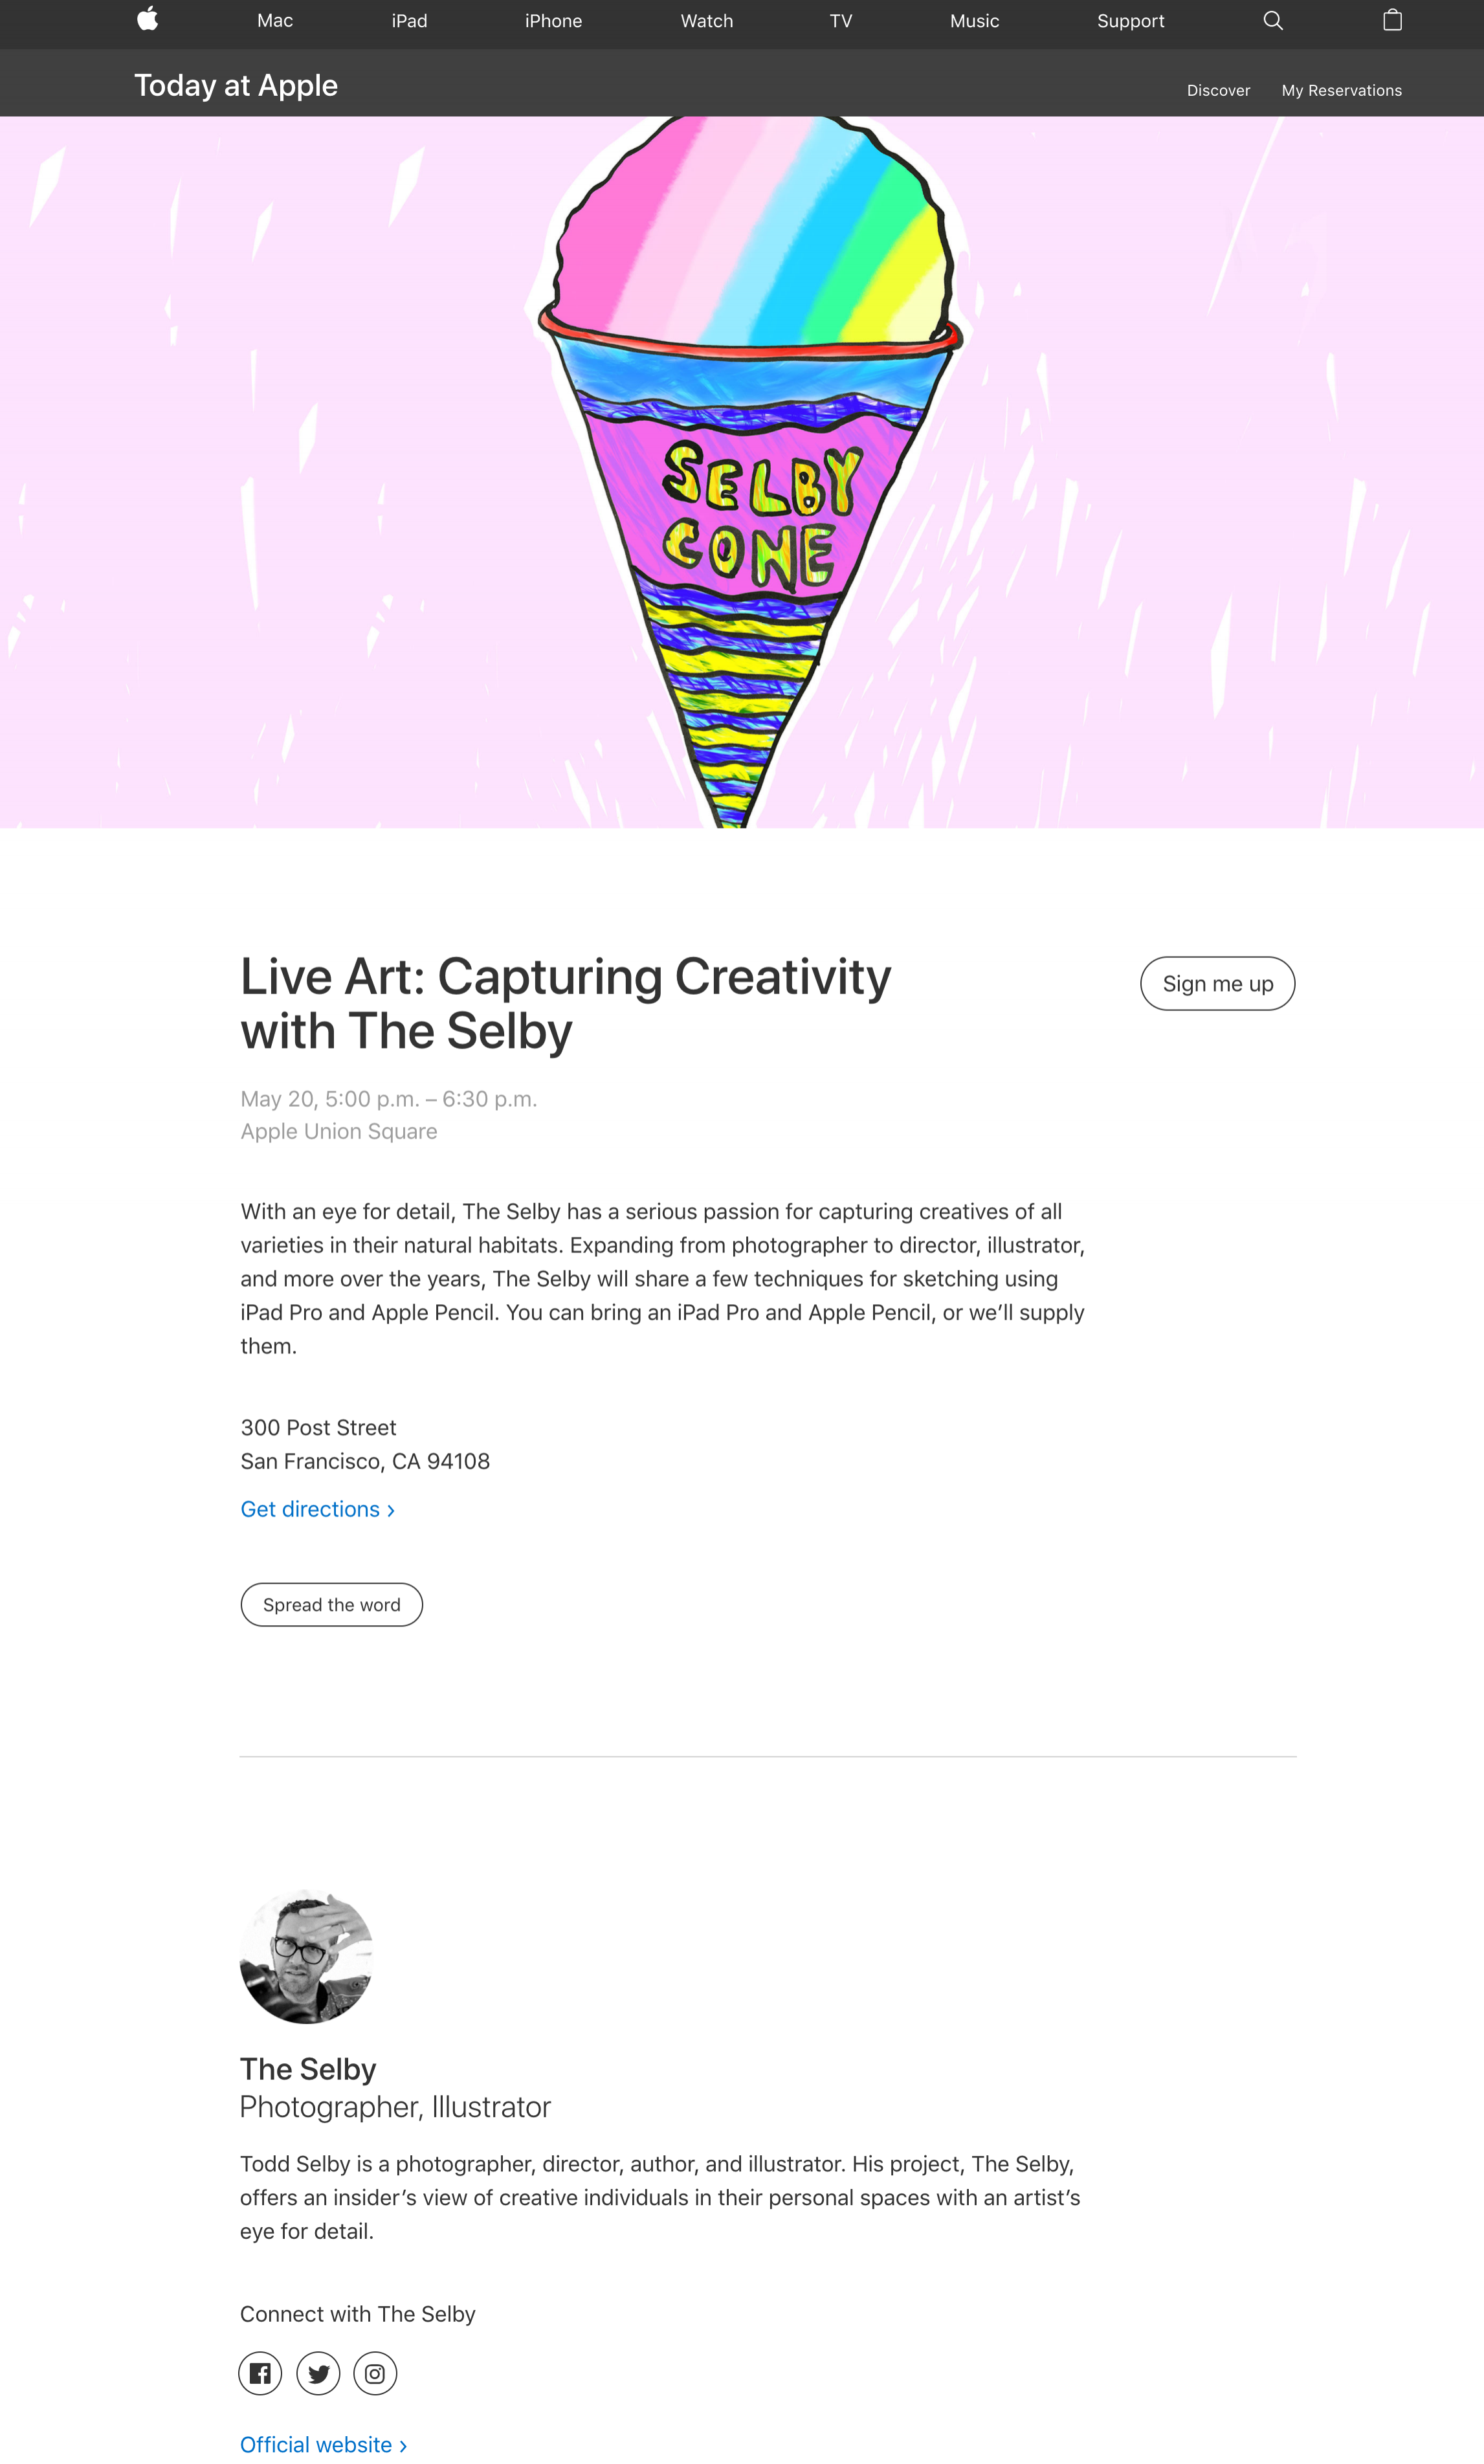 Today At Apple Union Square Live Art Capturing Creativity With